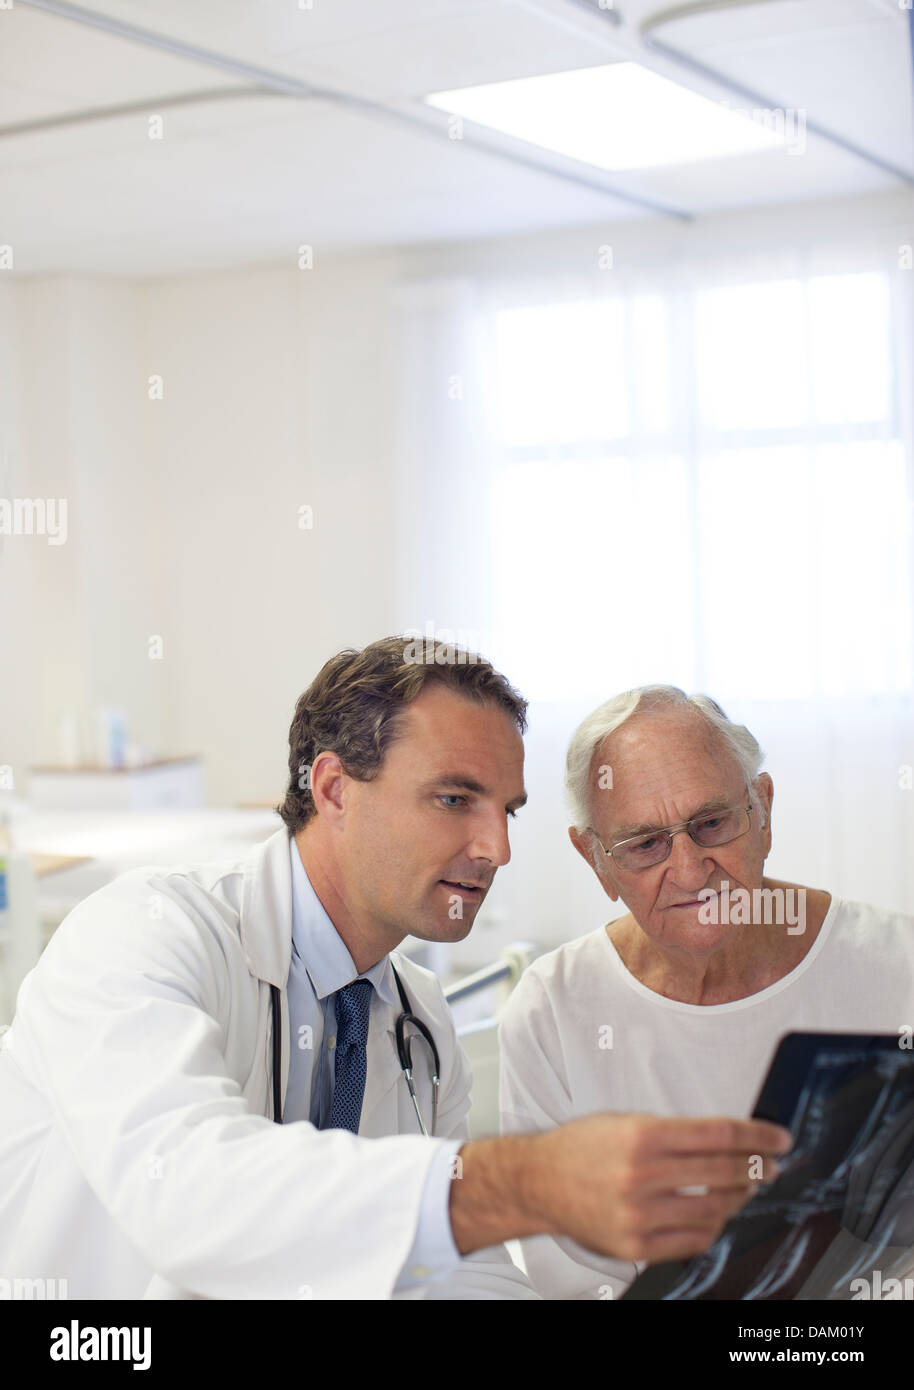 Doctor showing x-rays to older patient in hospital room - Stock Image